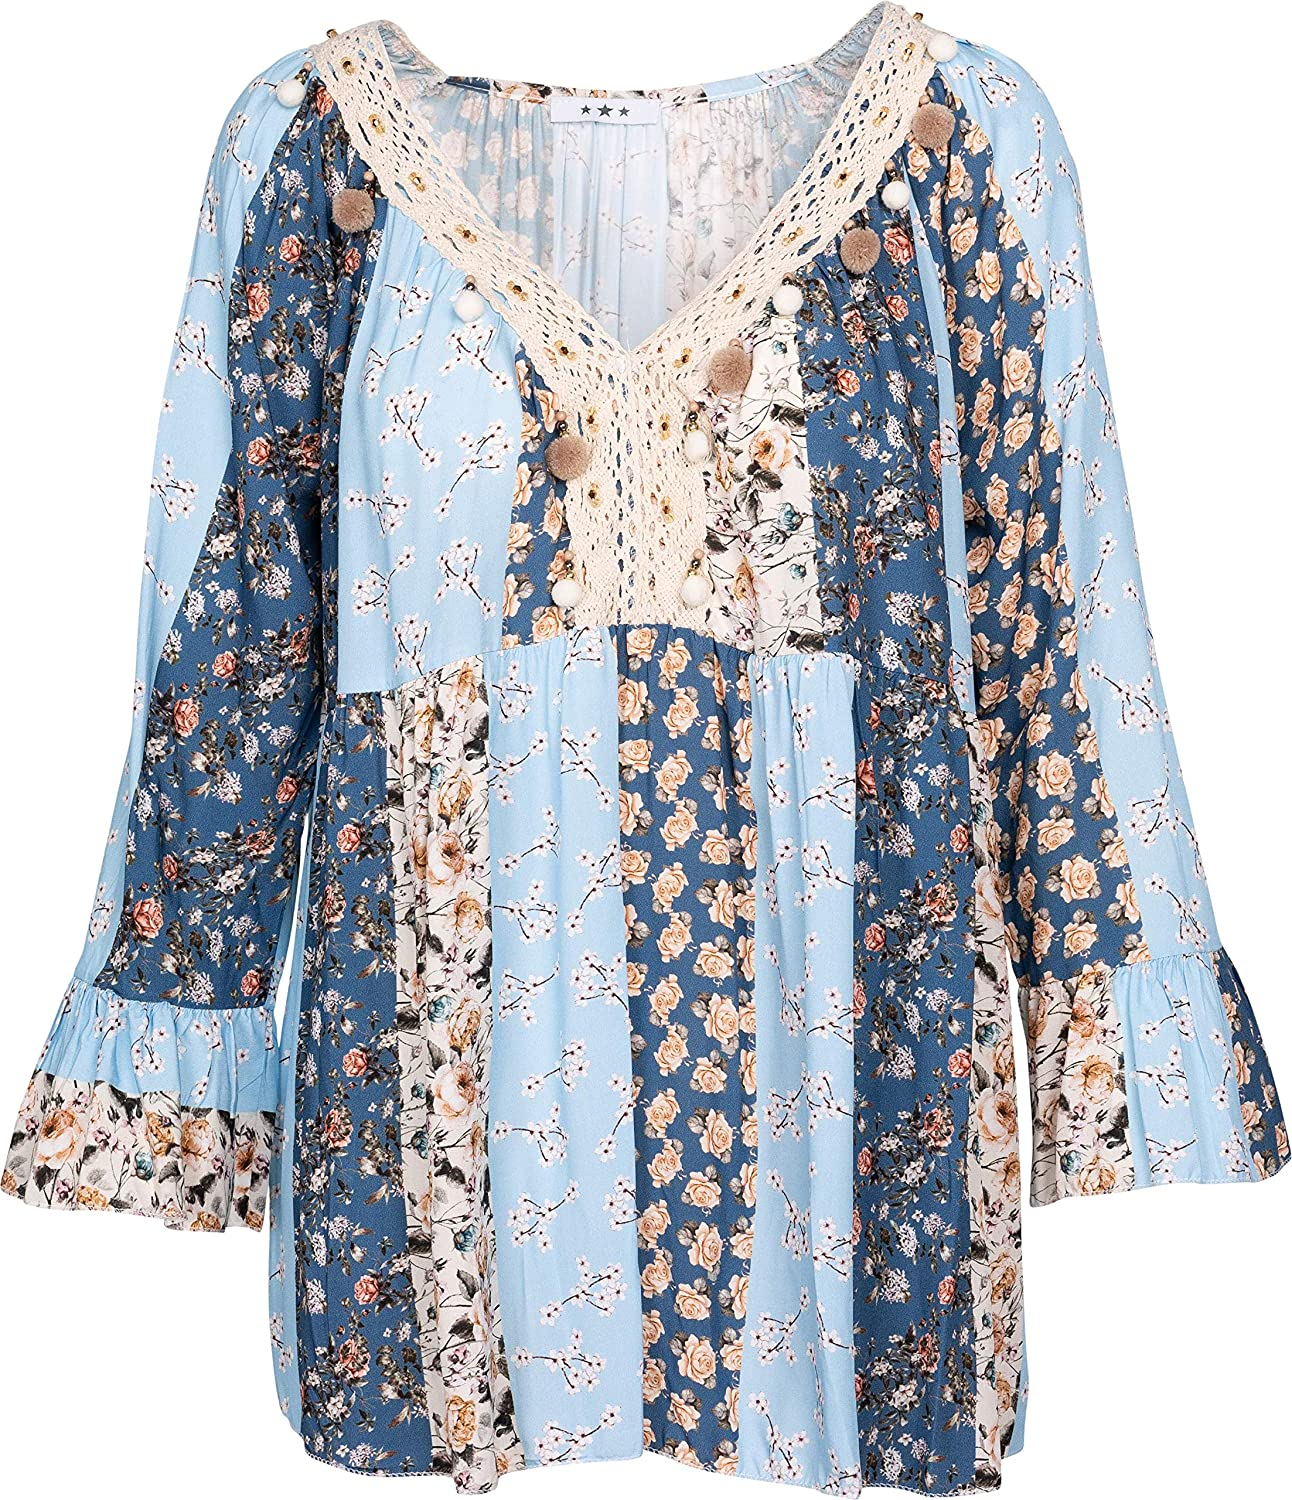 M Made in Italy Womens Long Sleeve Printed Blouse Blouse Sky Combo